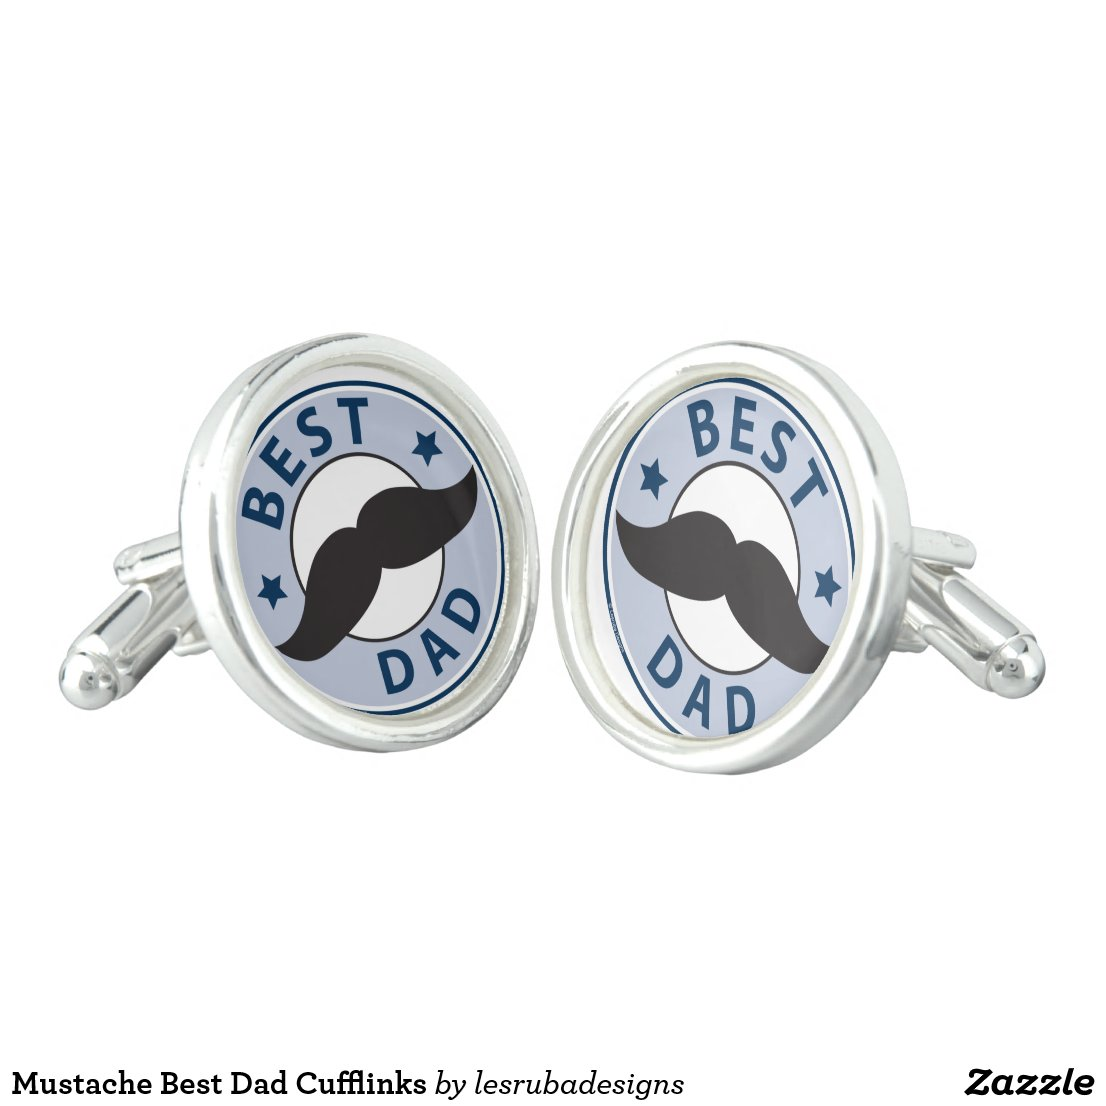 Mustache Best Dad Cufflinks